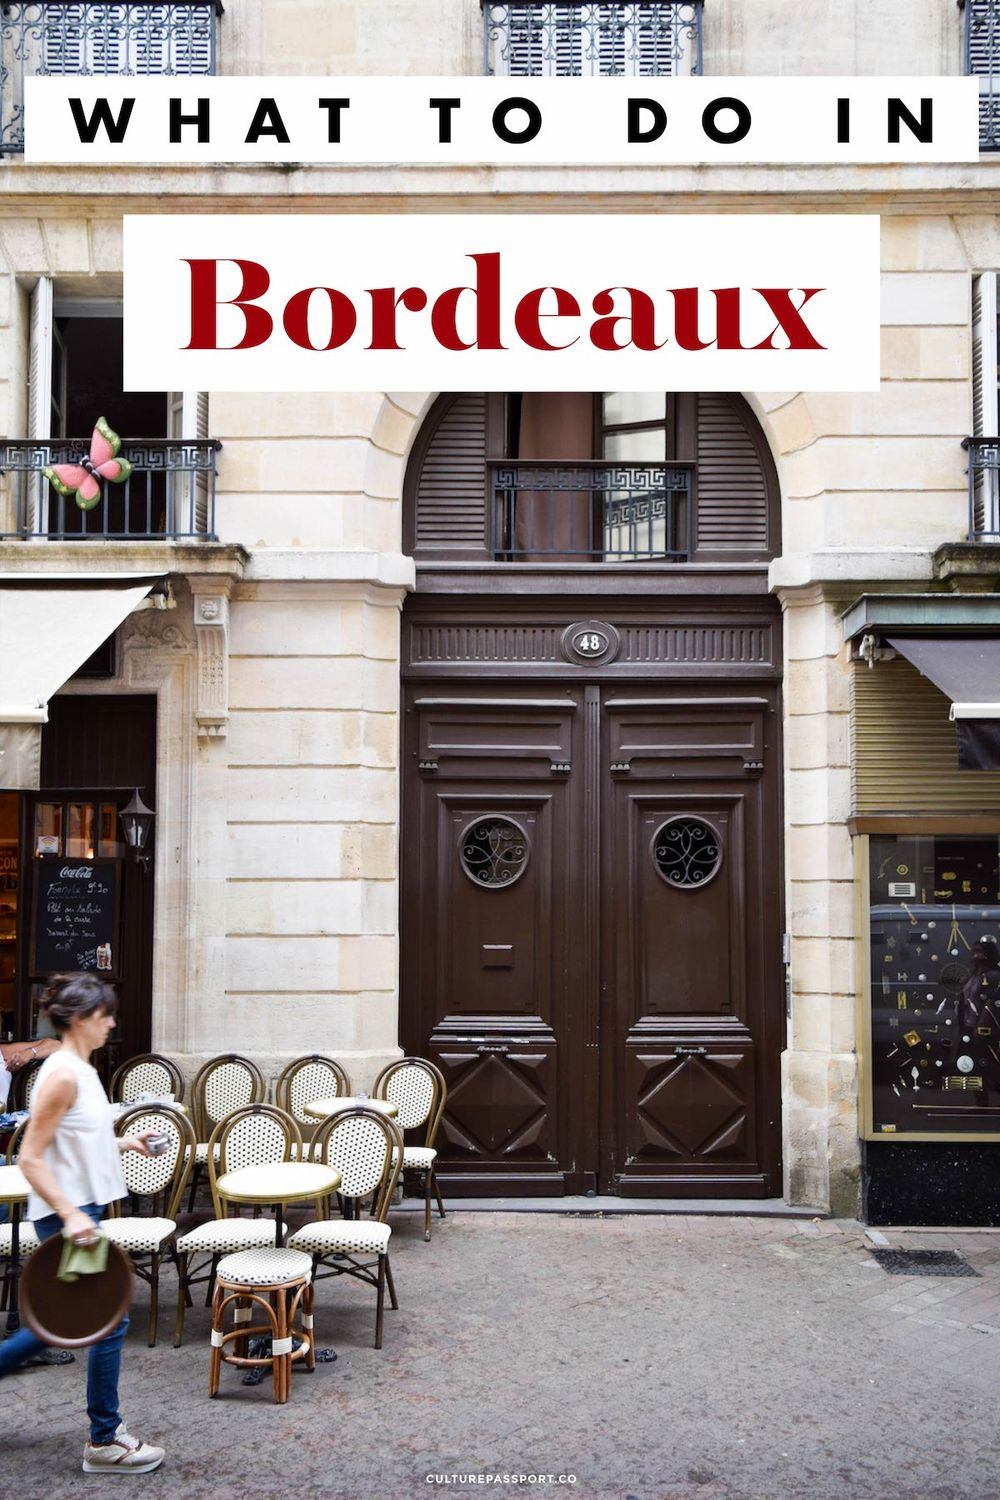 What to do in Bordeaux! #francetravel